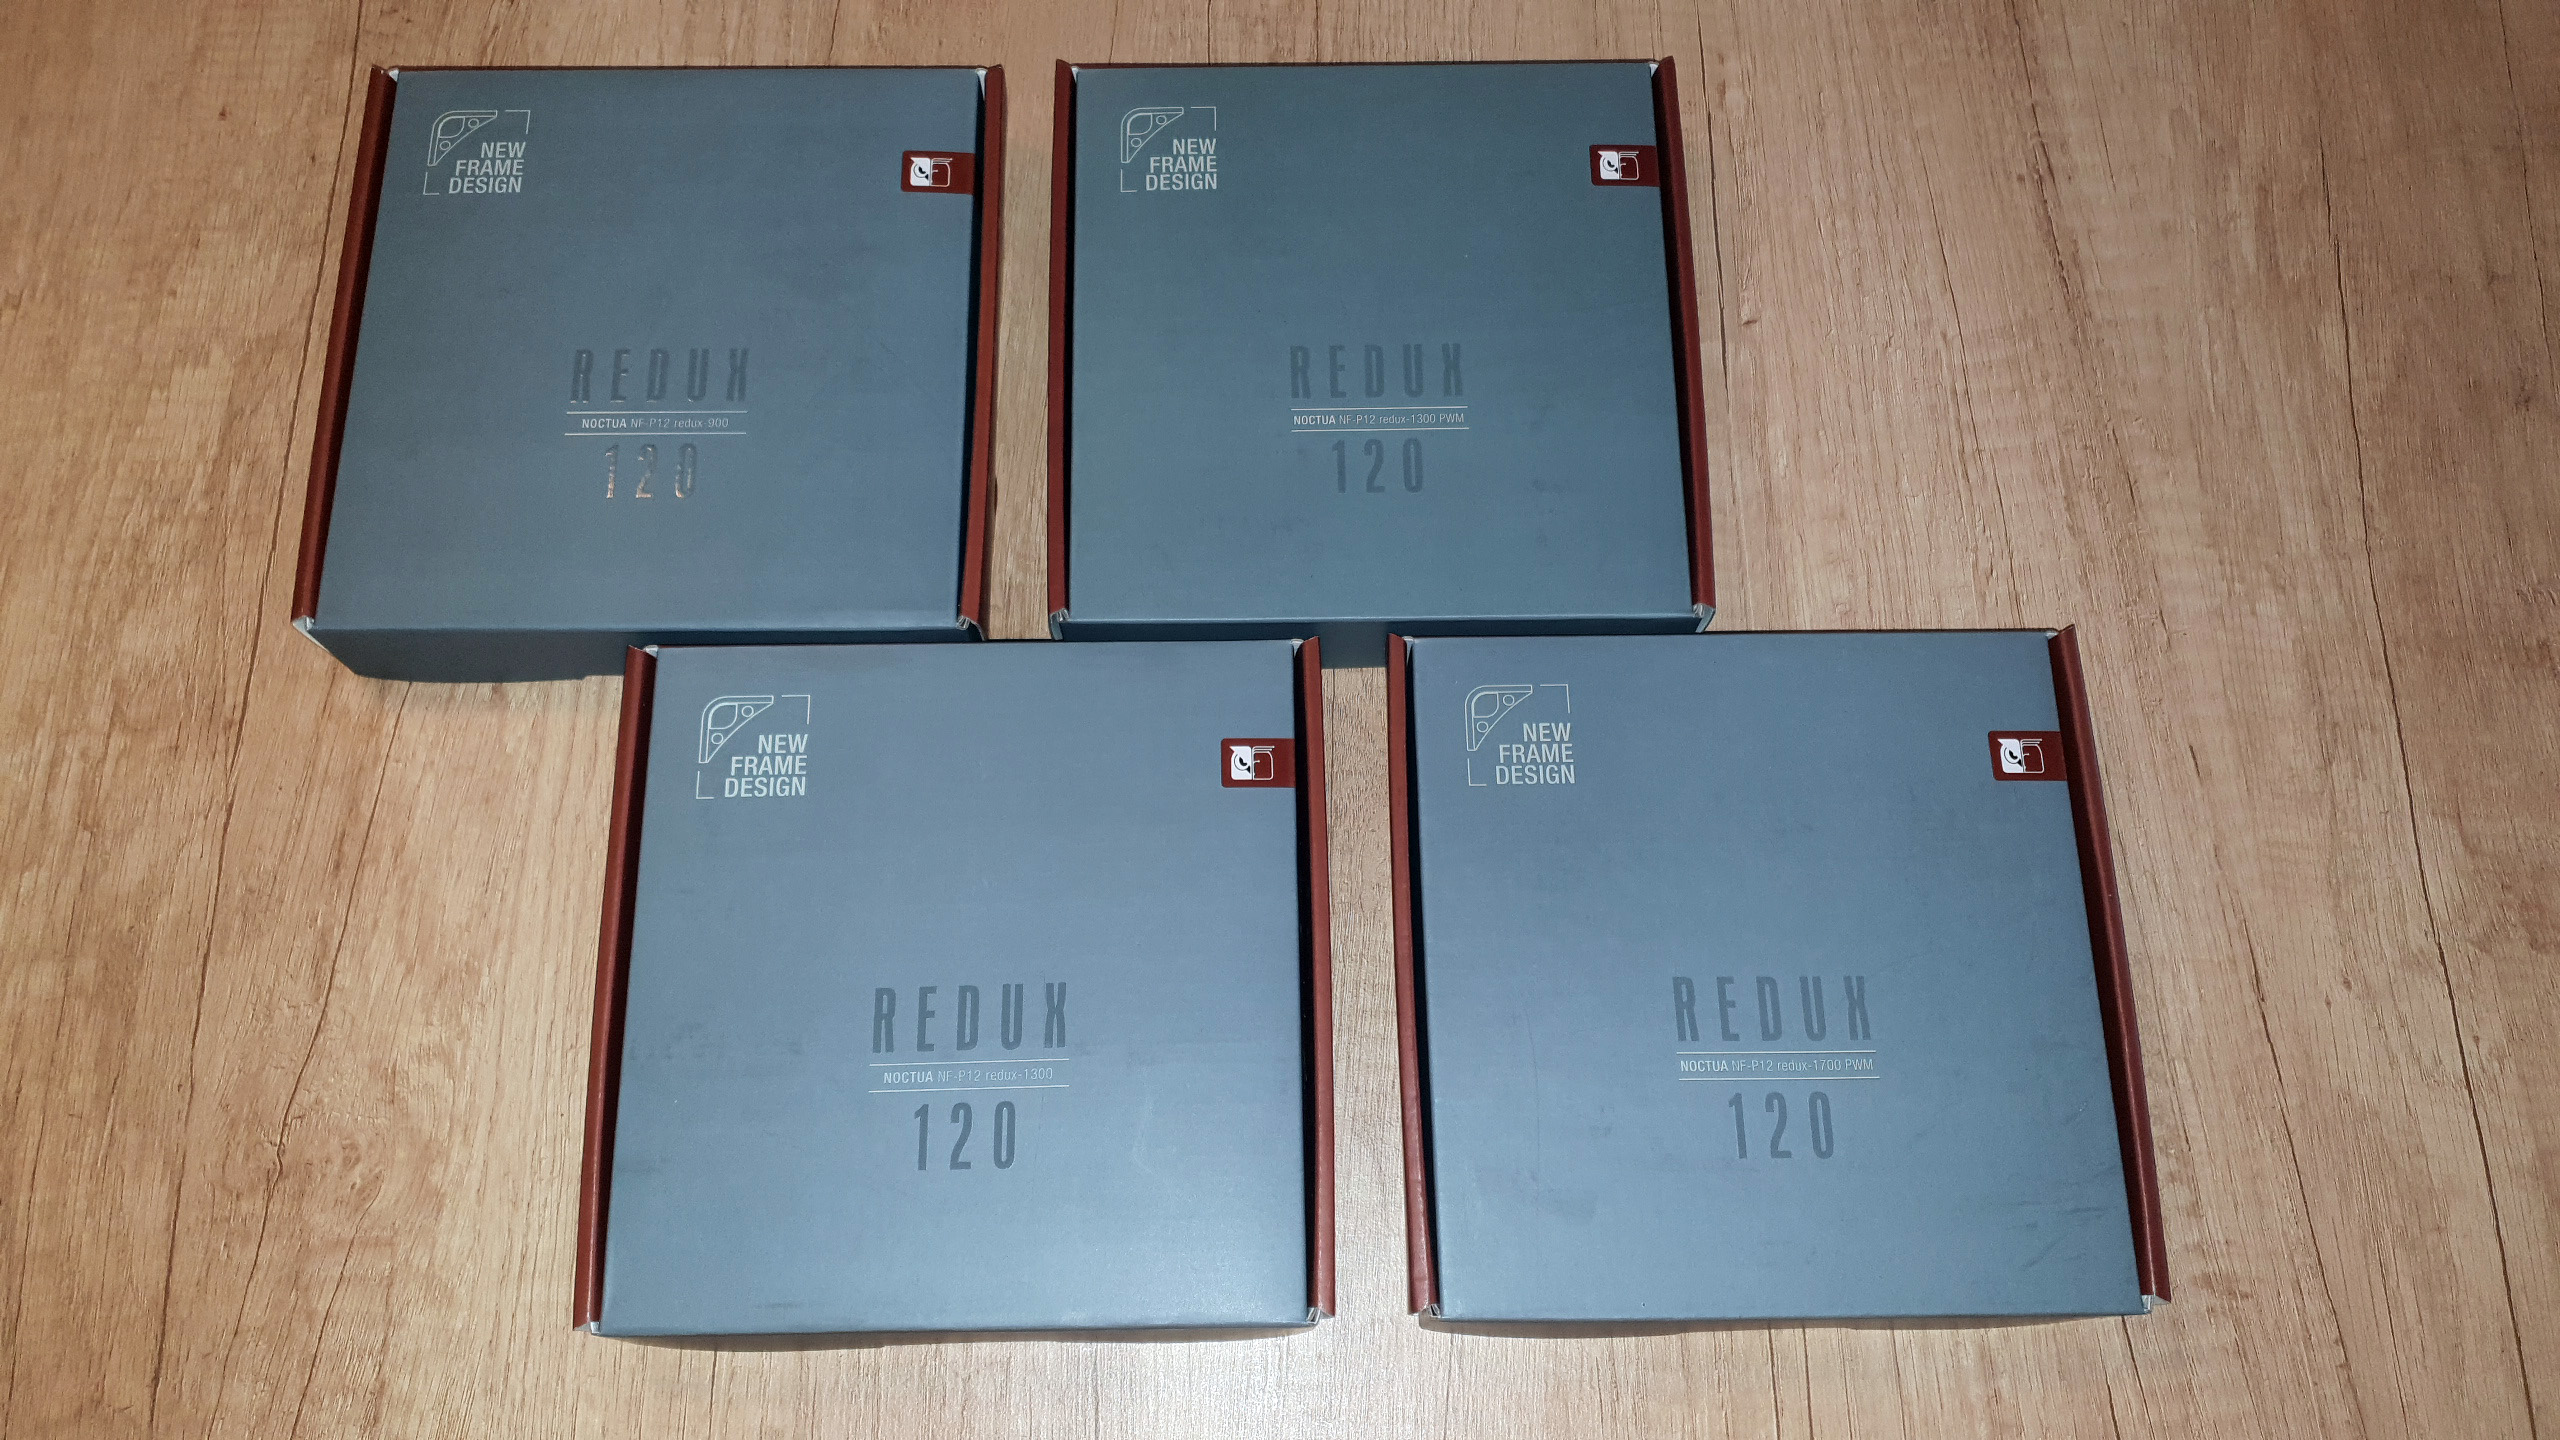 Noctua NF-P12 redux 900 - 1700 PWM - Test and Review -